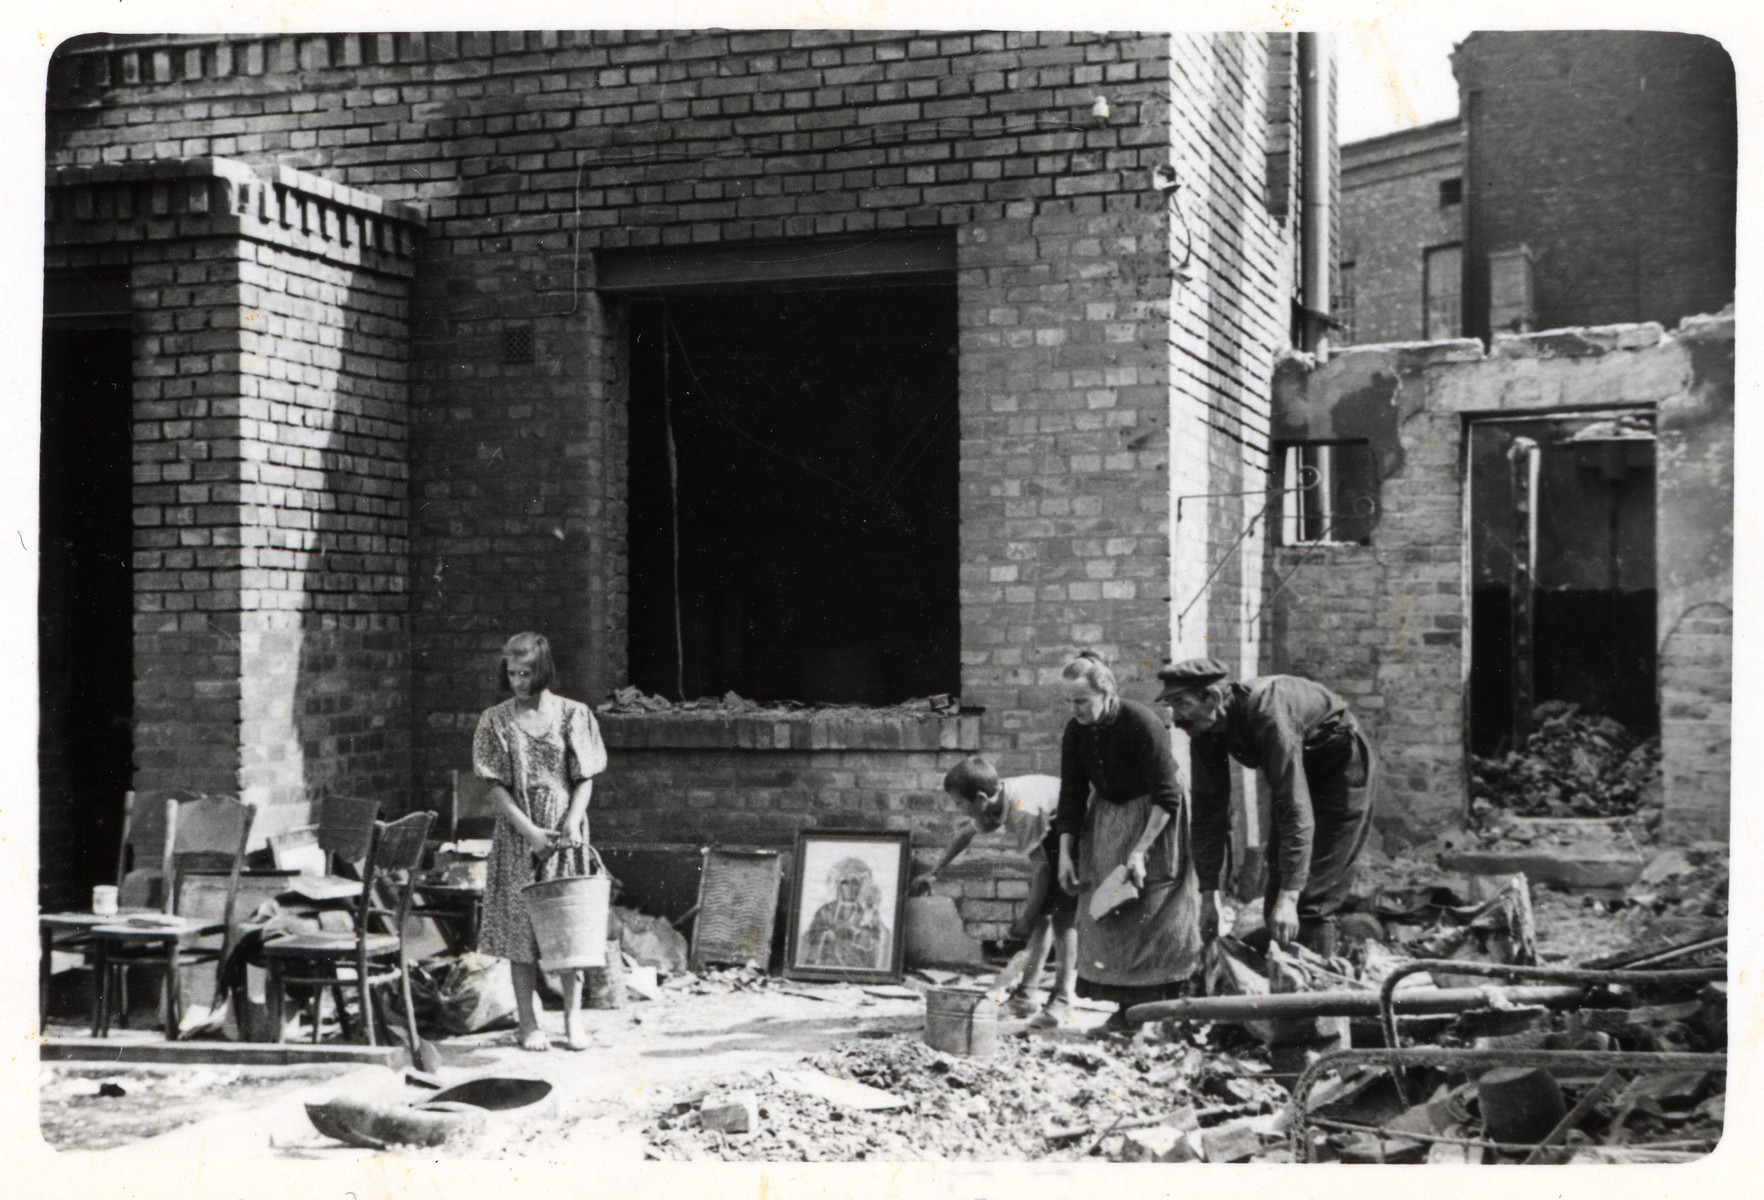 A Polish family picks up the pieces of the wreckage of a bombed out home in the besieged city of Warsaw.